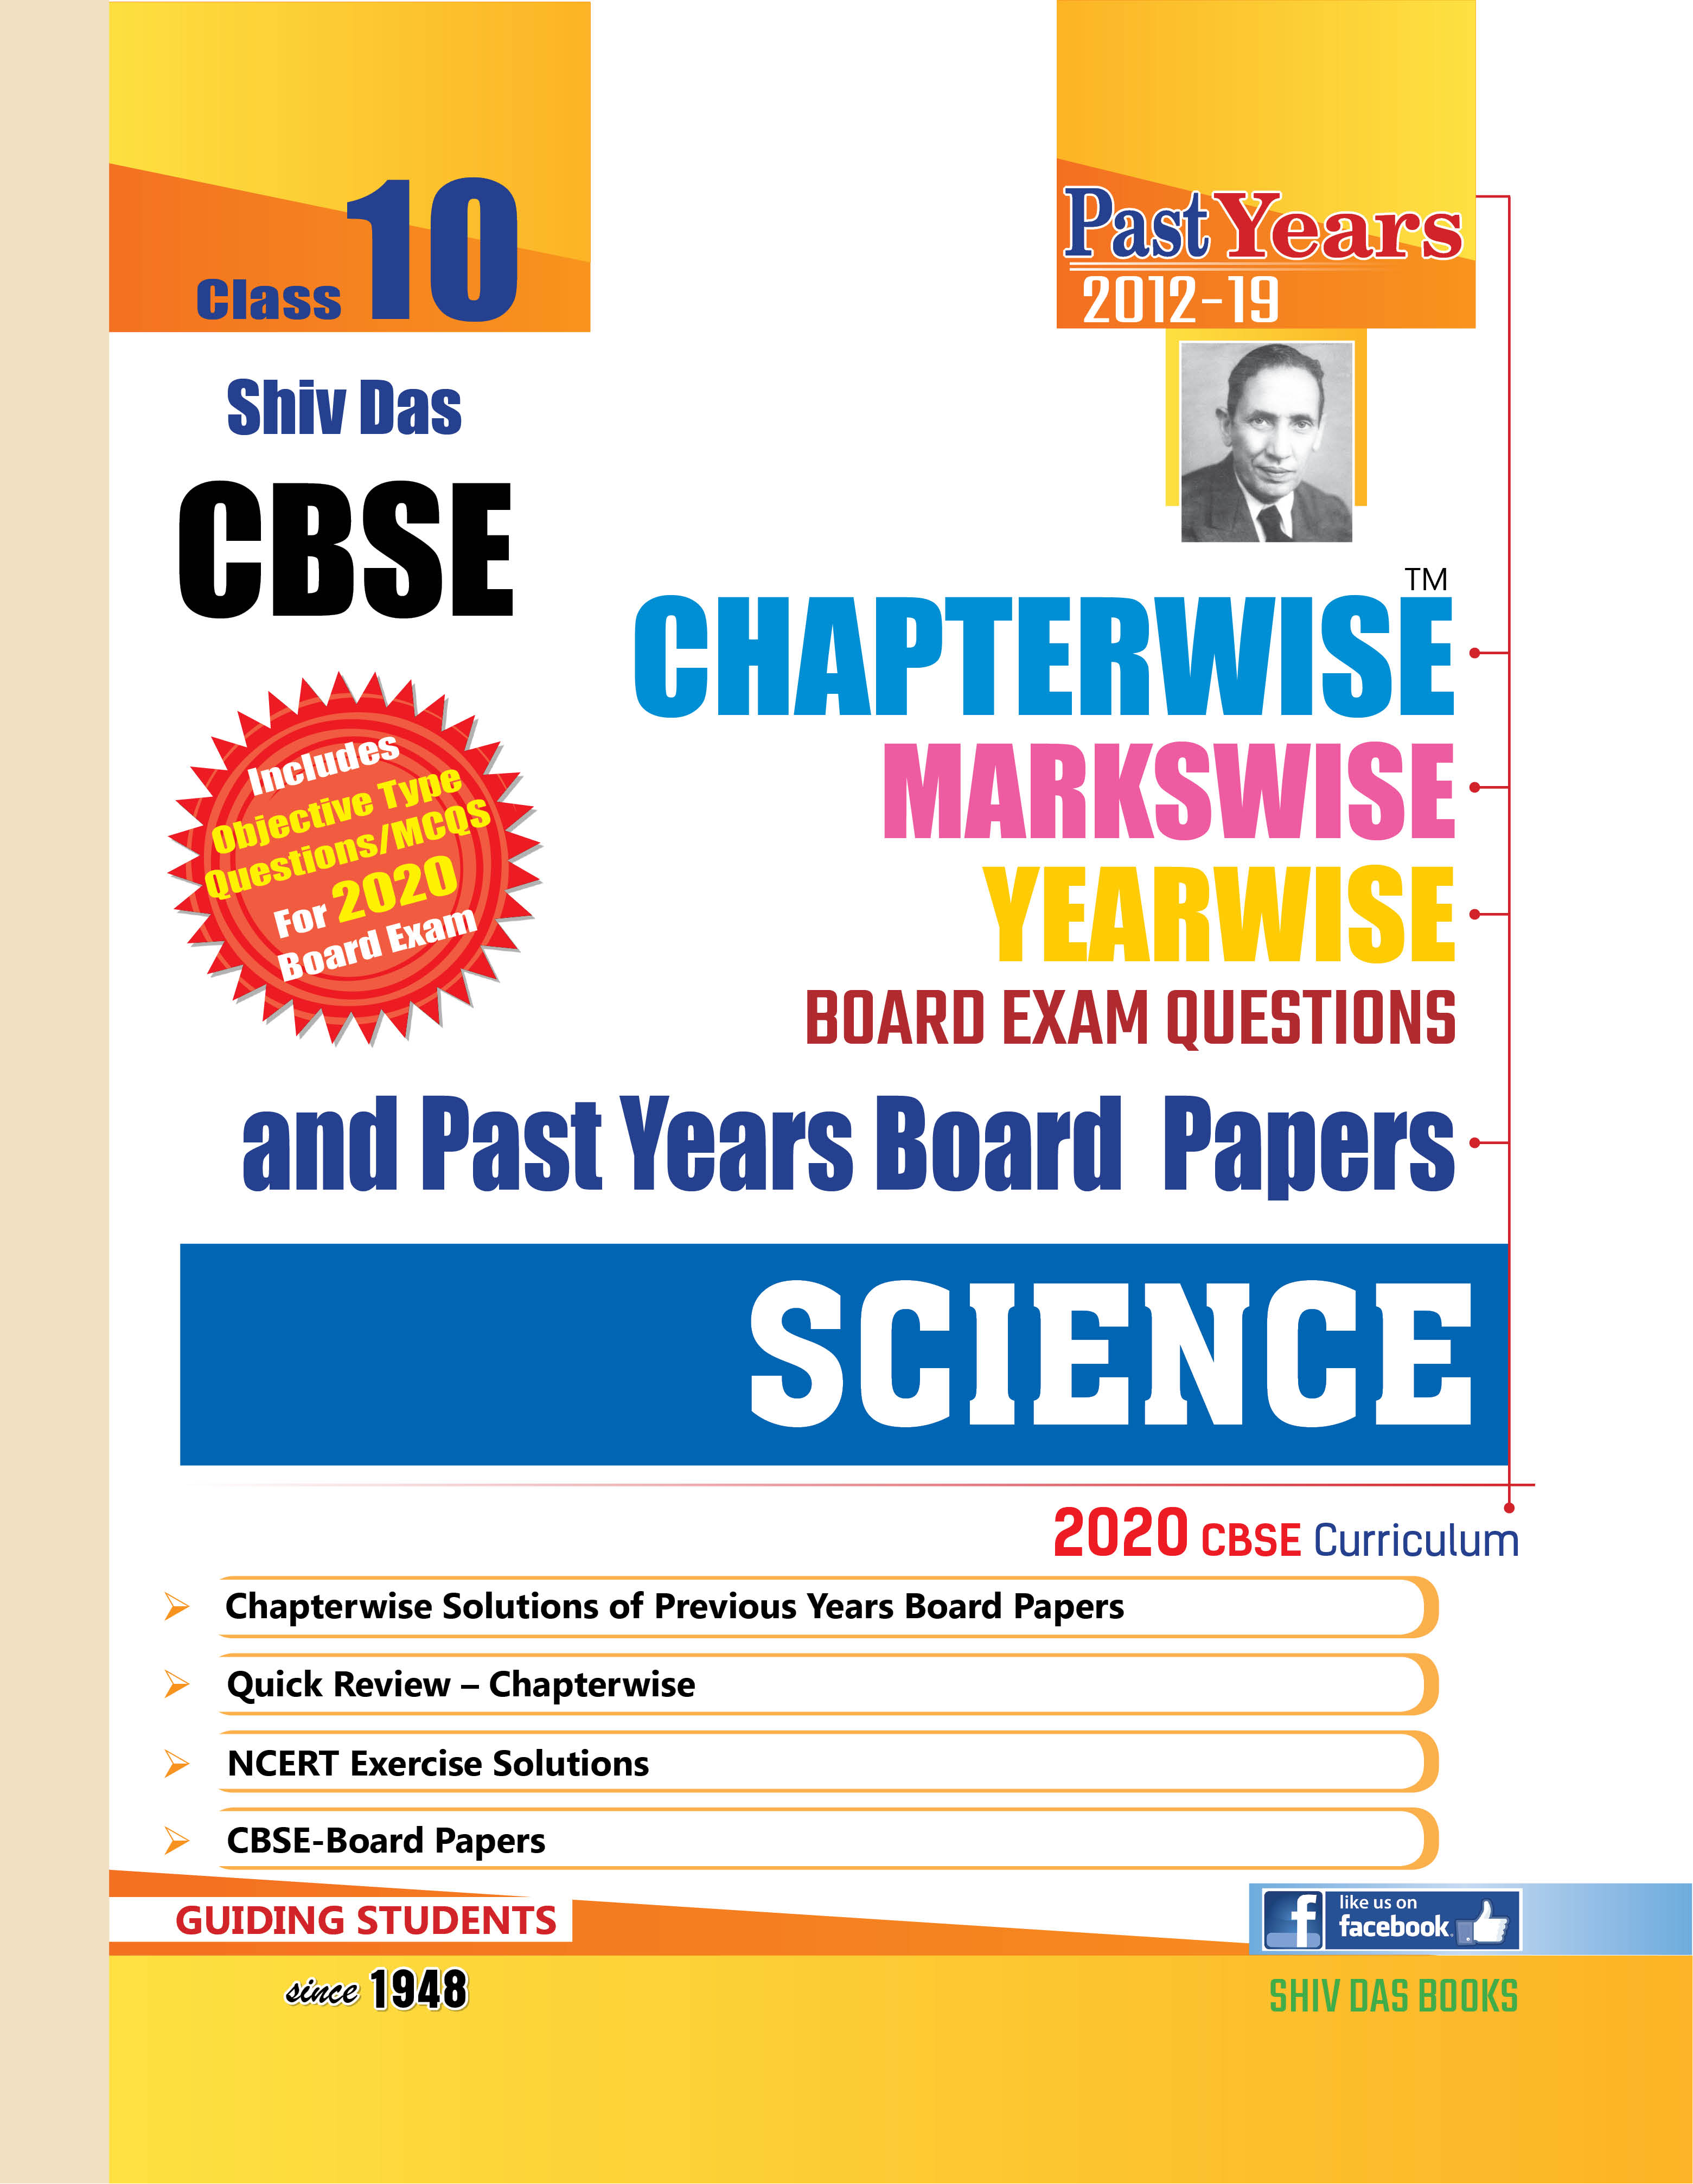 Shiv Das CBSE Chapterwise Markswise Yearwise Board Exam Question Bank for Class 10 Science (2020 Board Exam Edition)